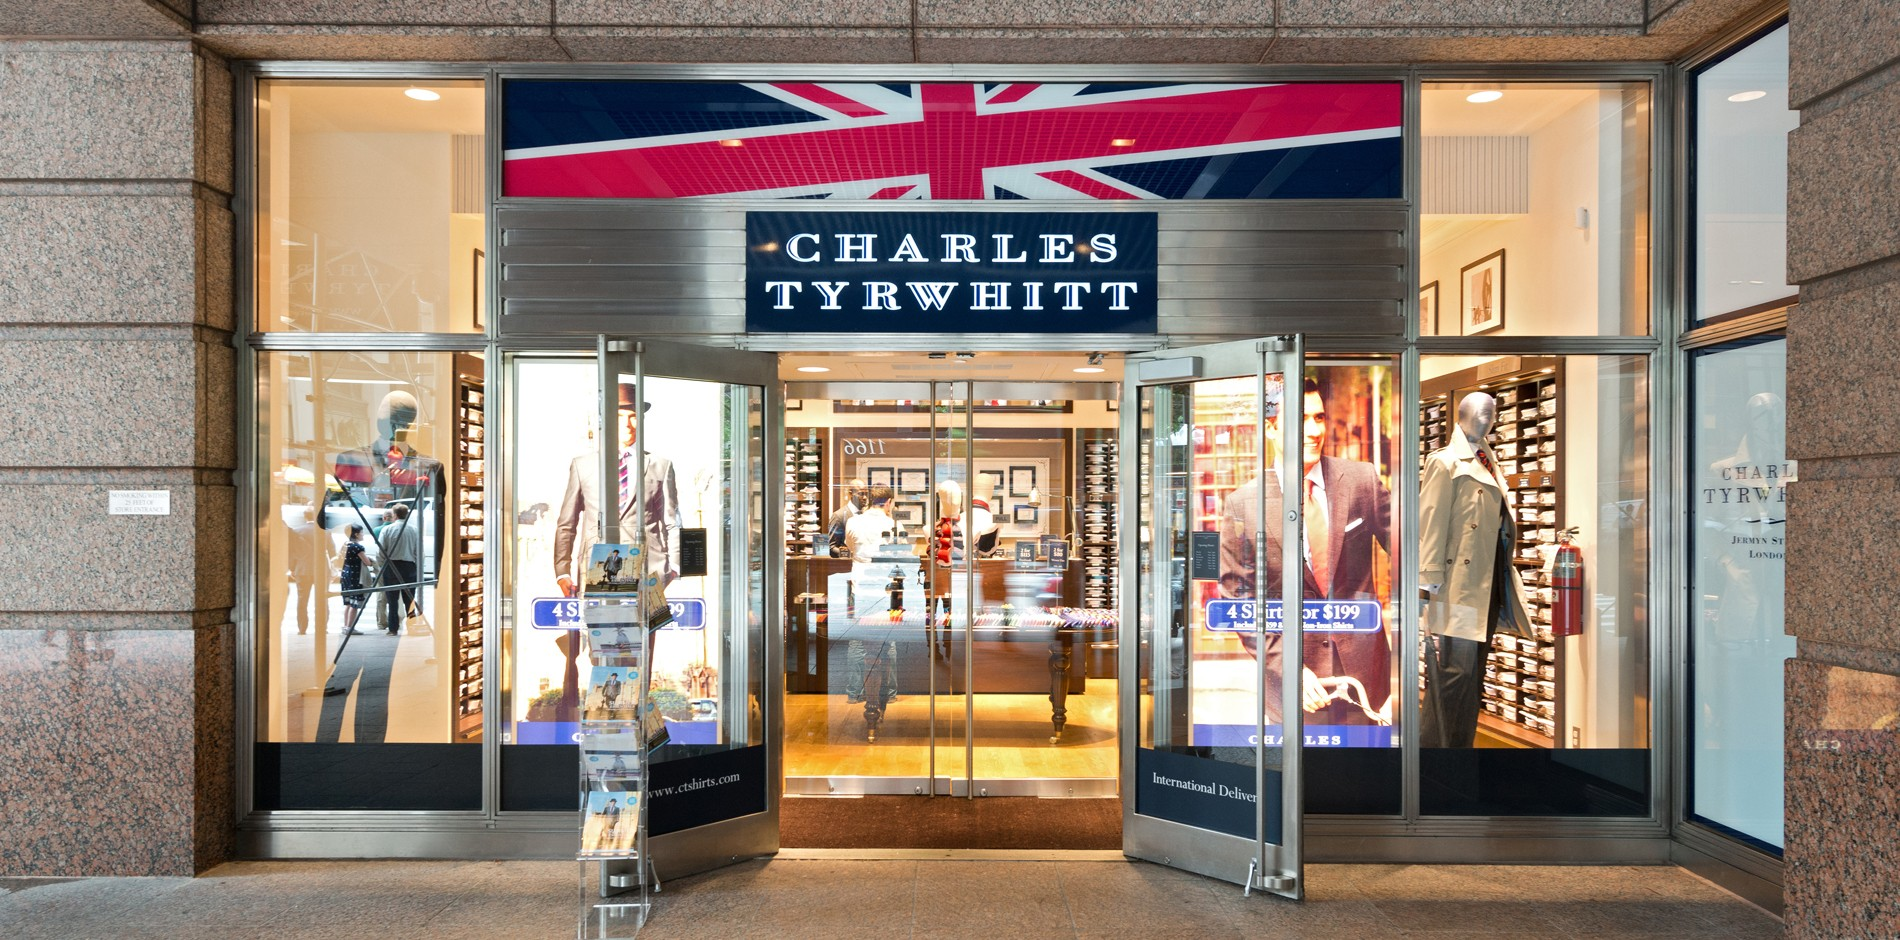 Charles Tyrwhitt Salaries trends. 5 salaries for 1 jobs at Charles Tyrwhitt in New York City. Salaries posted anonymously by Charles Tyrwhitt employees in New York City.